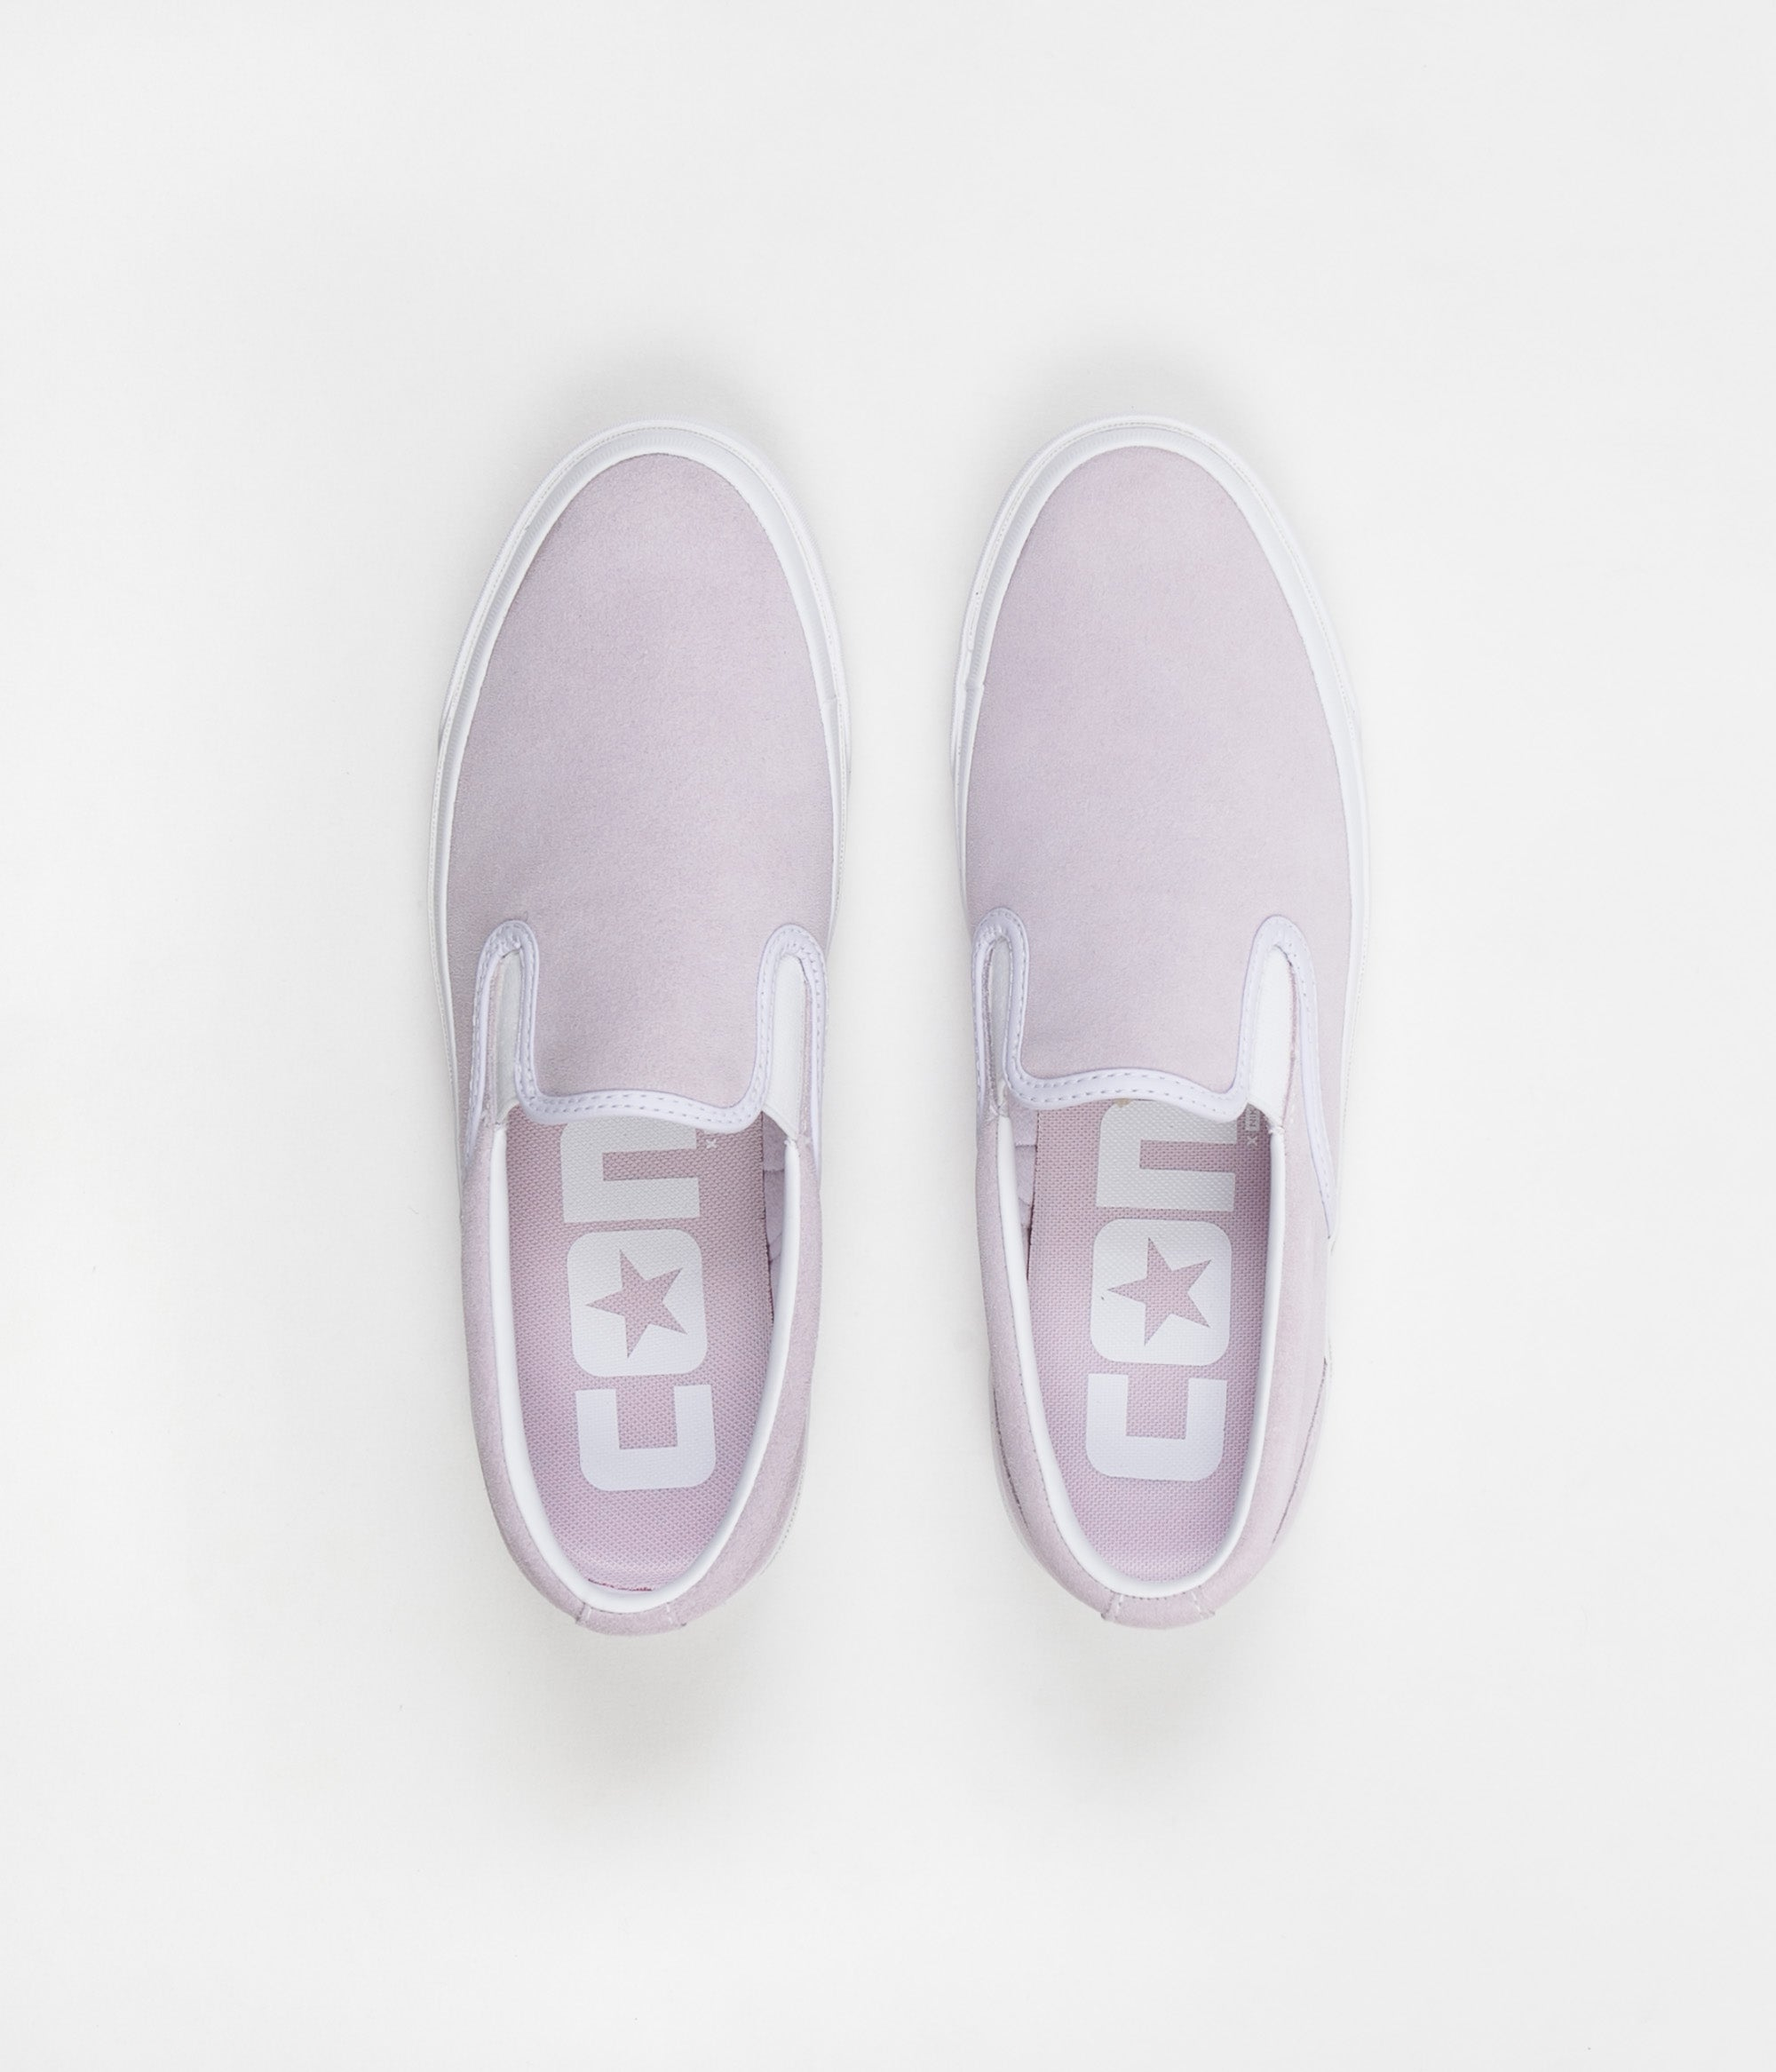 4b1e8a335f18 Converse One Star CC Slip On Shoes - Barely Grape   White   White ...